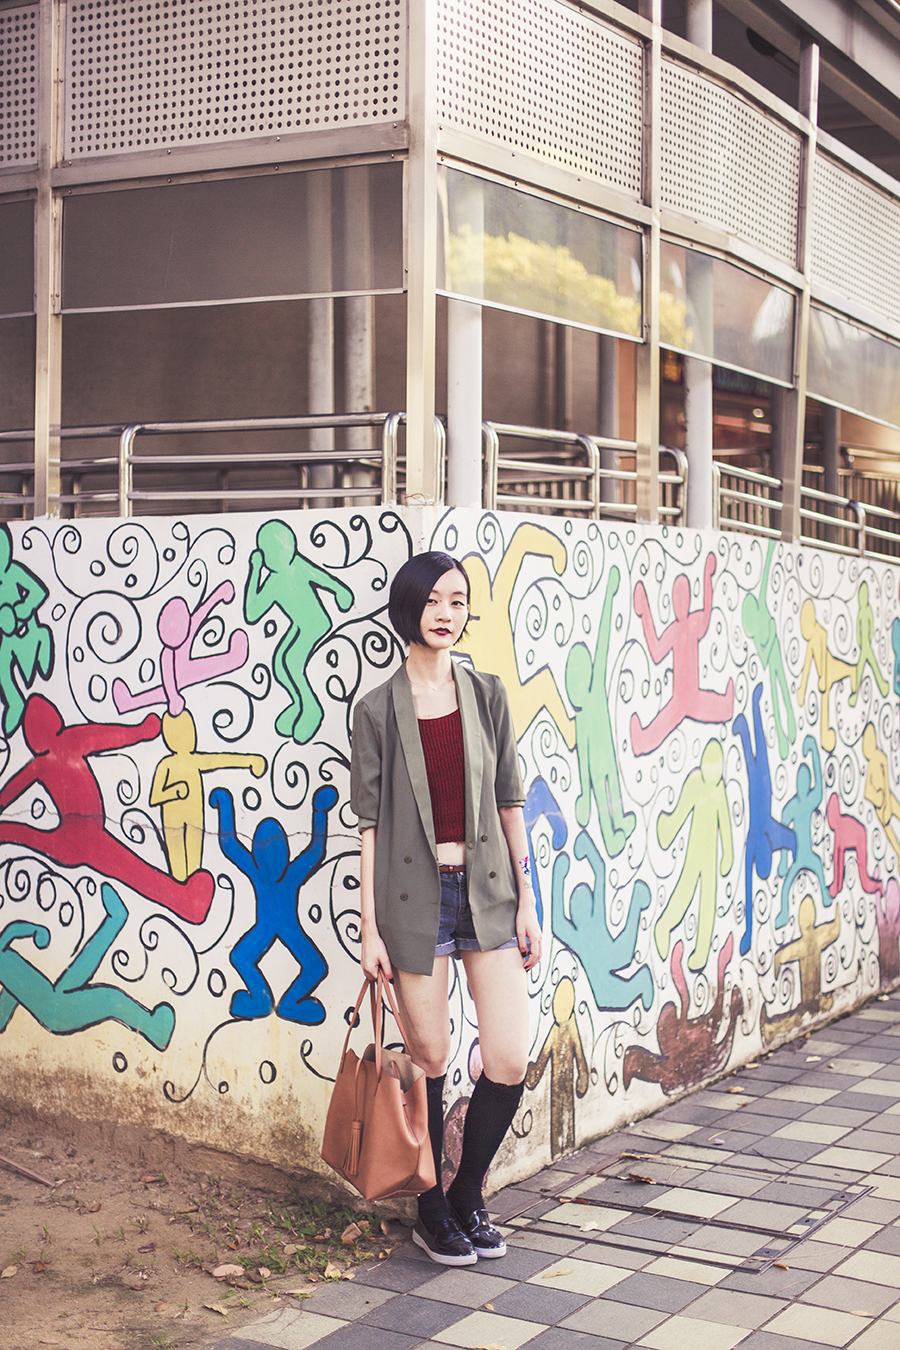 How Do I Look Asia Season 2 premiere party outfit in front of Keith Haring Mural by the Social Creatives Singapore: Topshop blazer, Shein ribbed top, Forever 21 denim shorts, Takashimaya lace knee high socks, Zalora shoes, ARTIKEL constellation necklace, Mango shopper tote bag.